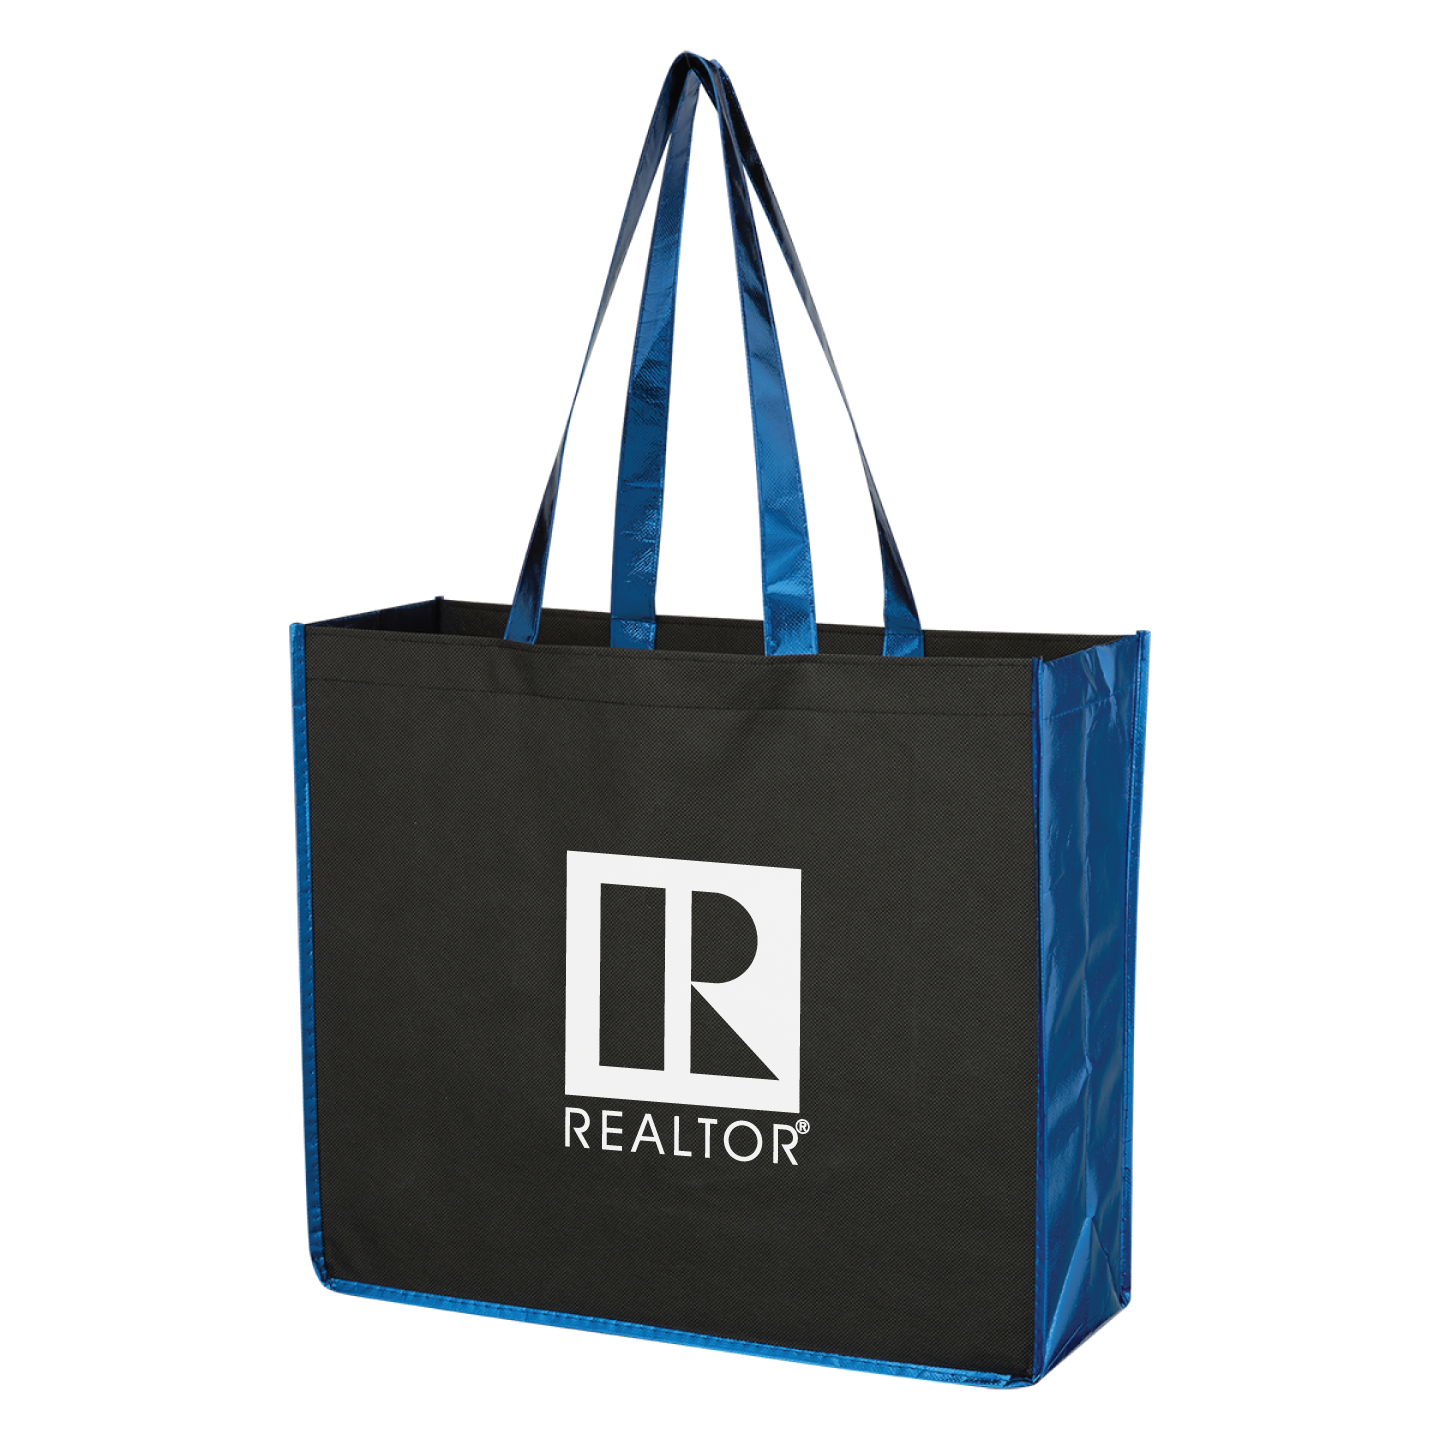 Metallic Accent Convention Tote Tote, Bag, Convention, Literature, Metallic, Shiny, Cheap, Value